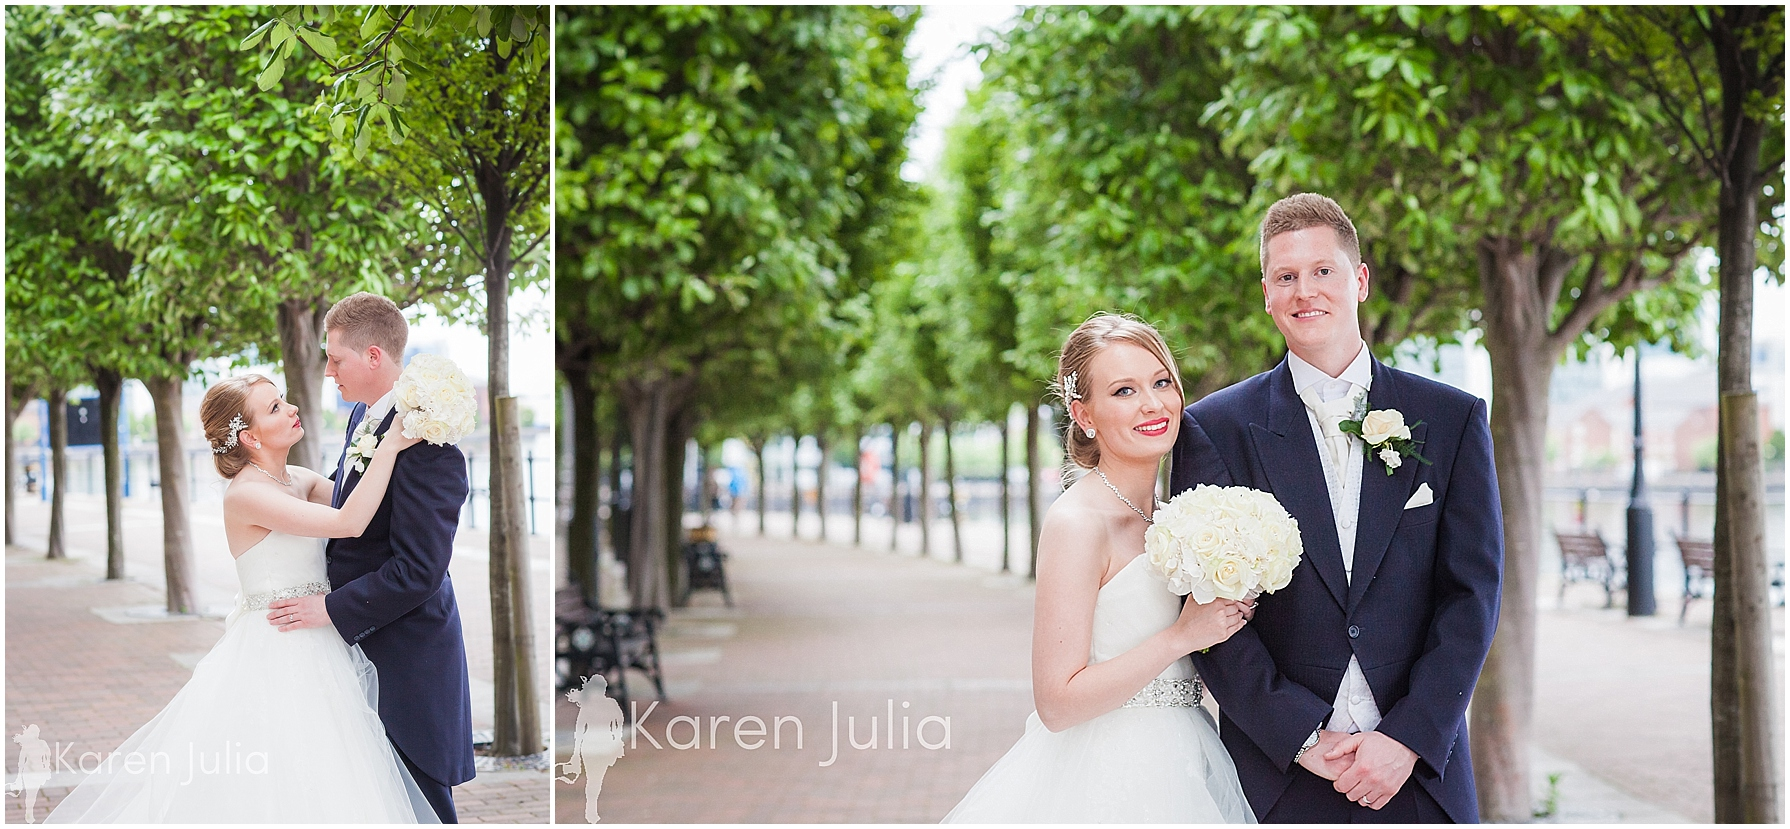 Blue themed Lowry Wedding Photography couple portraits